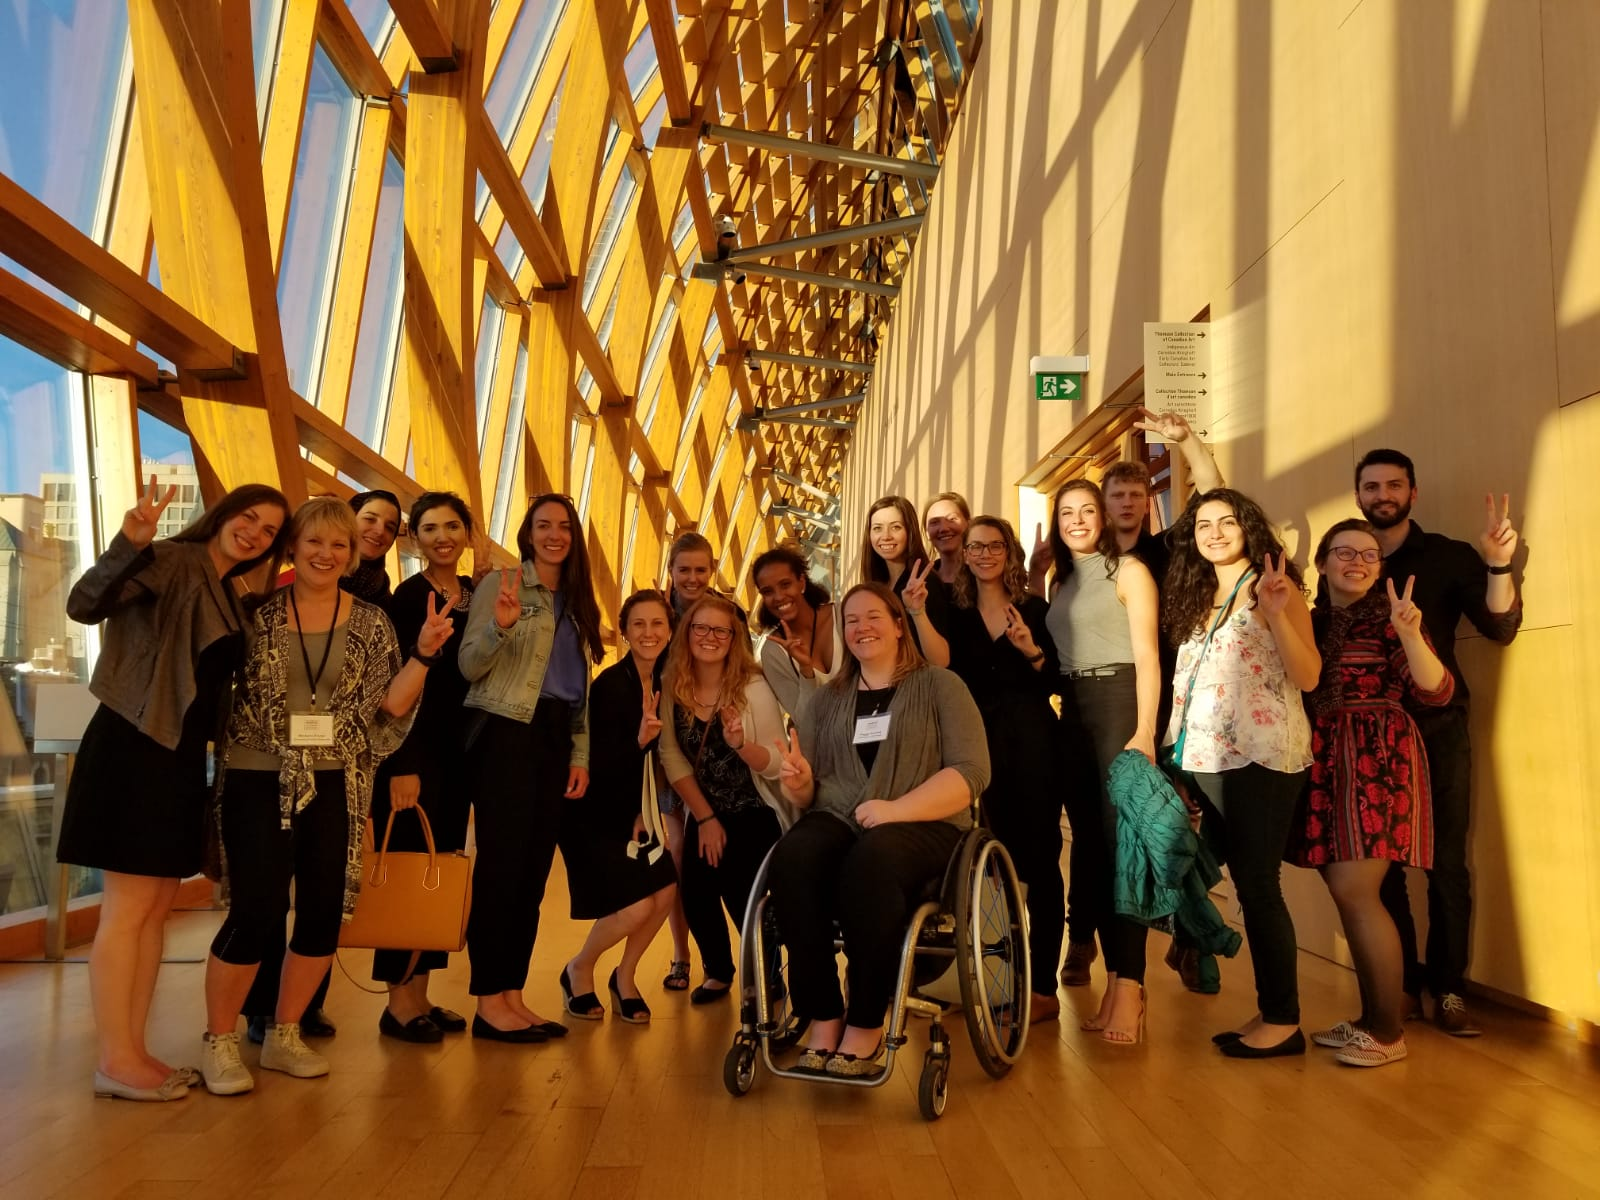 Group 2 (we're not flashing the peace sign) visits the Art Gallery of Ontario during a short break in the action.